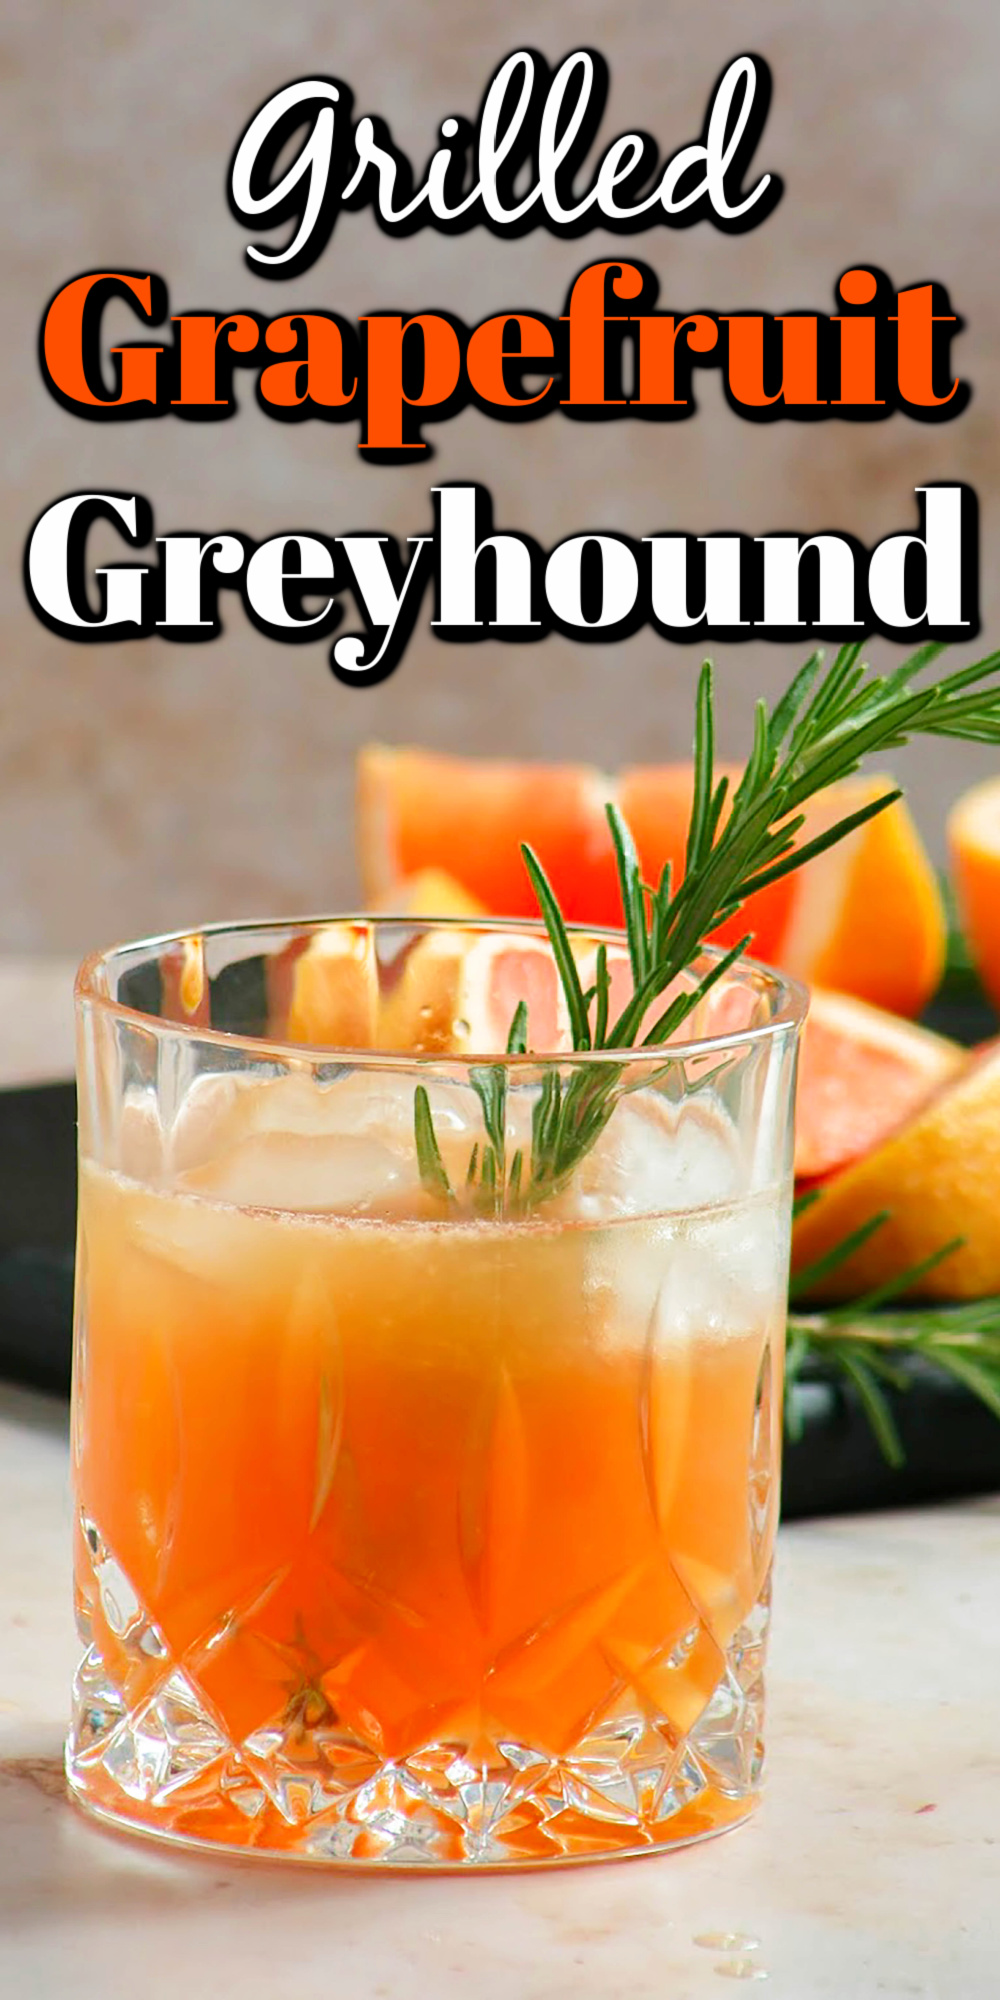 Super refreshing, tart, and just a little sweet. This Grilled Grapefruit Greyhound Cocktail is easy to make with simple ingredients.